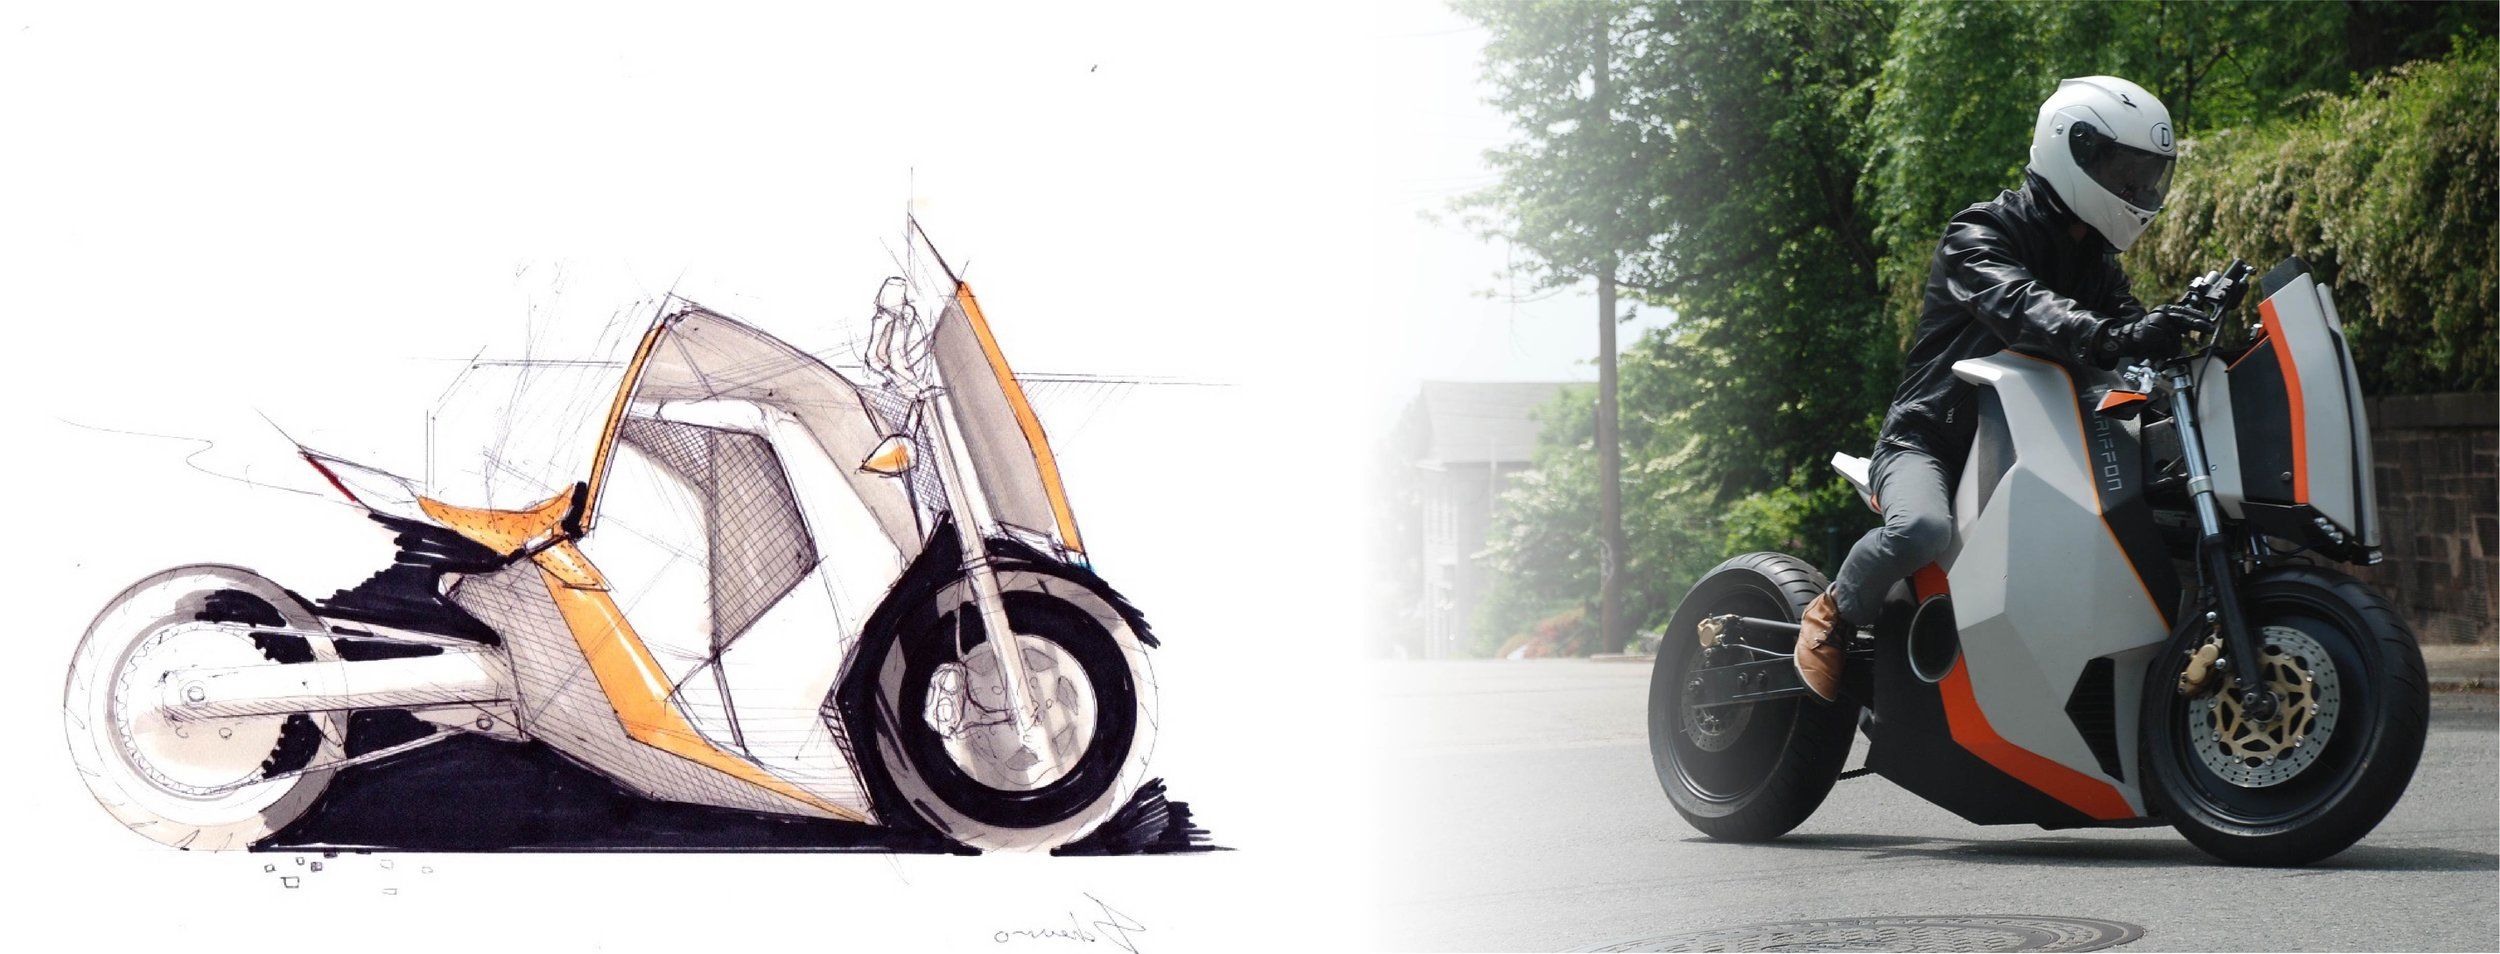 MOTORCYCLE - Concept to Reality